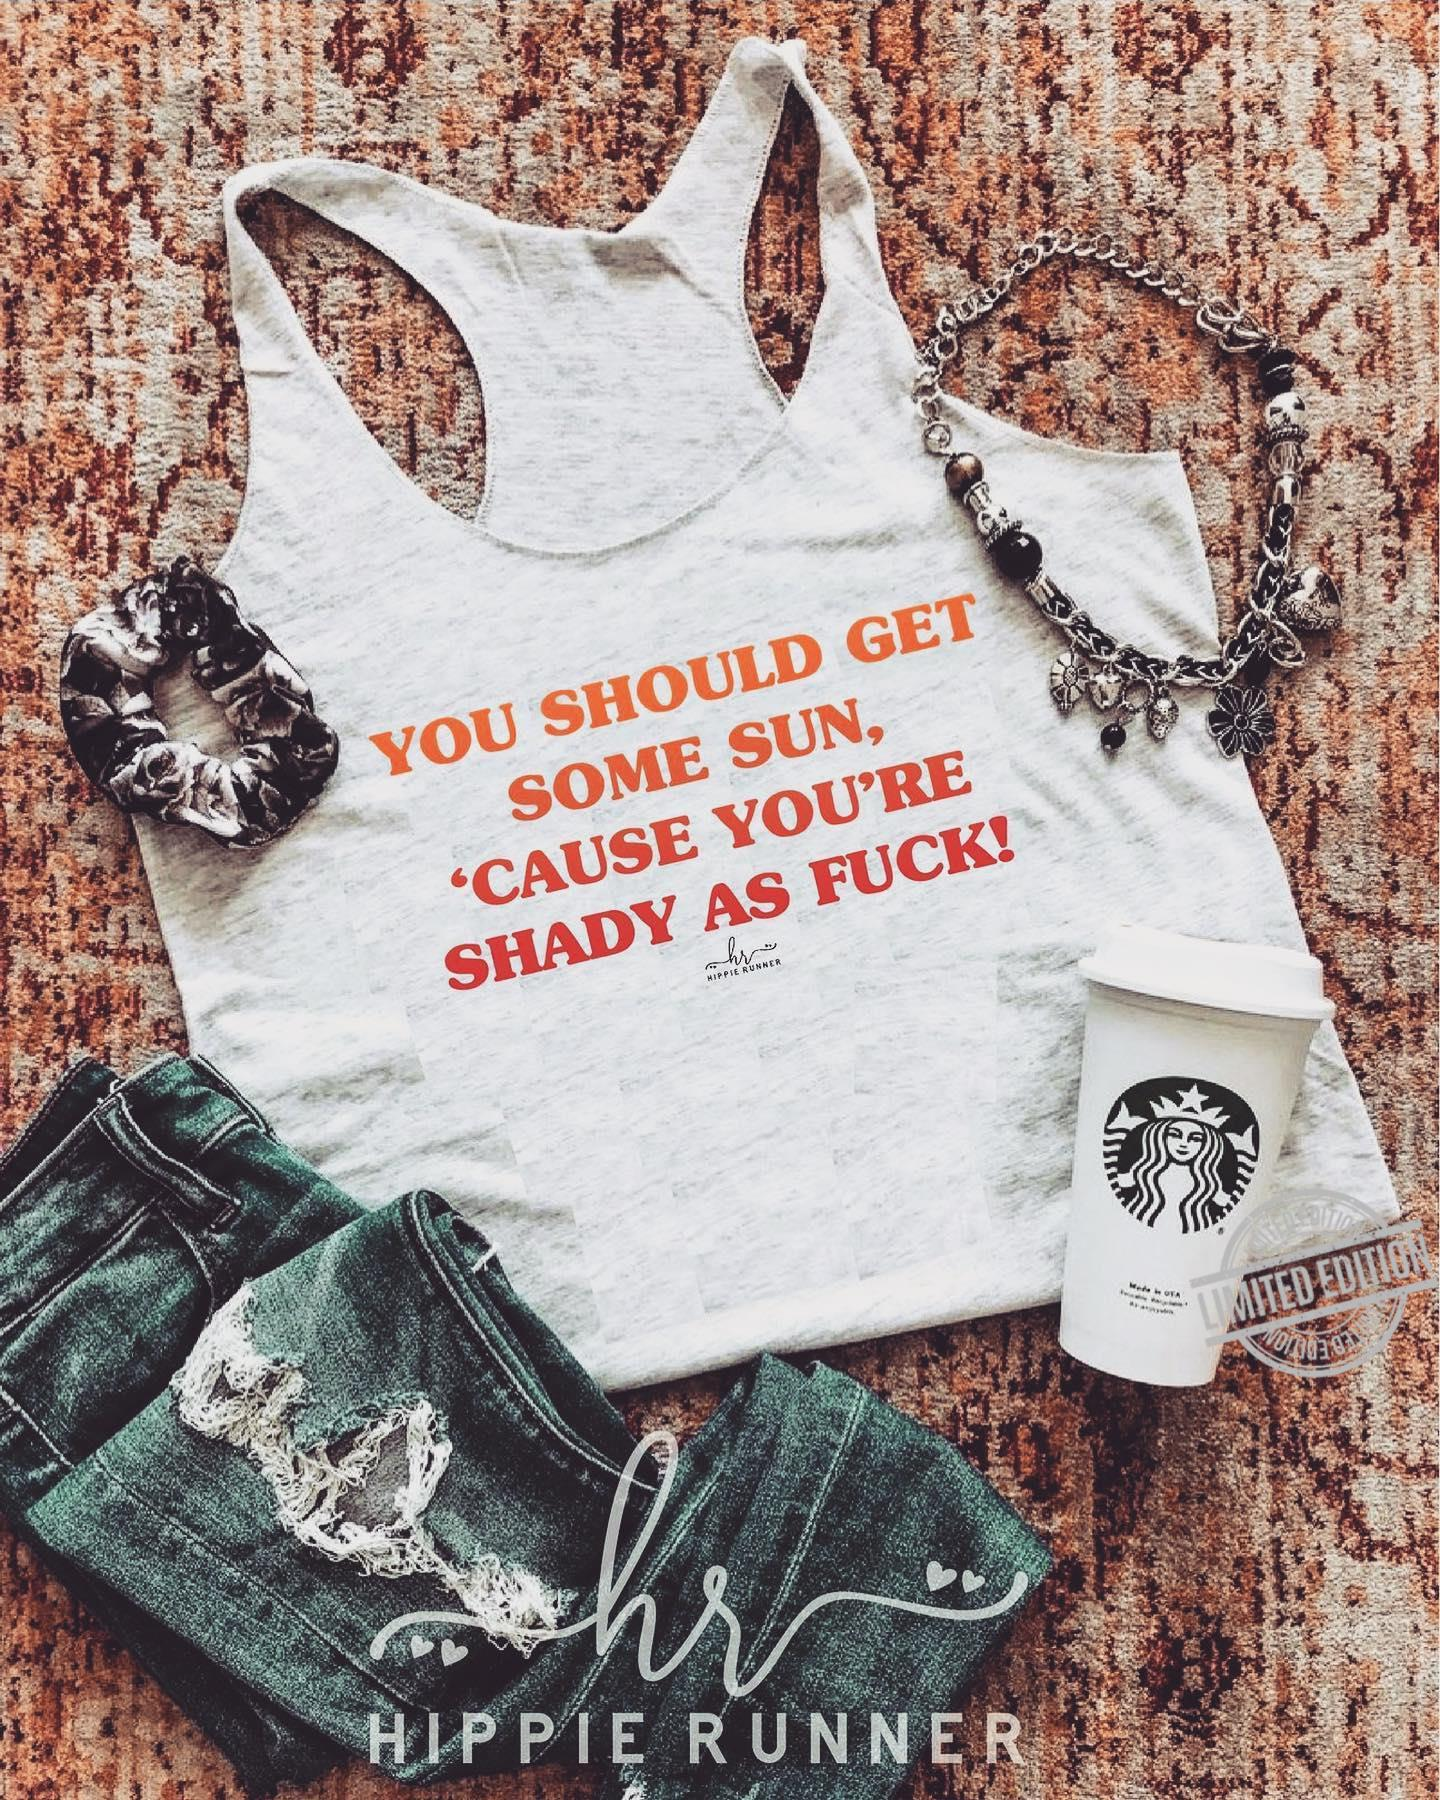 You Should Get Some Sun, 'Cause You're Shady As Fuck Shirt